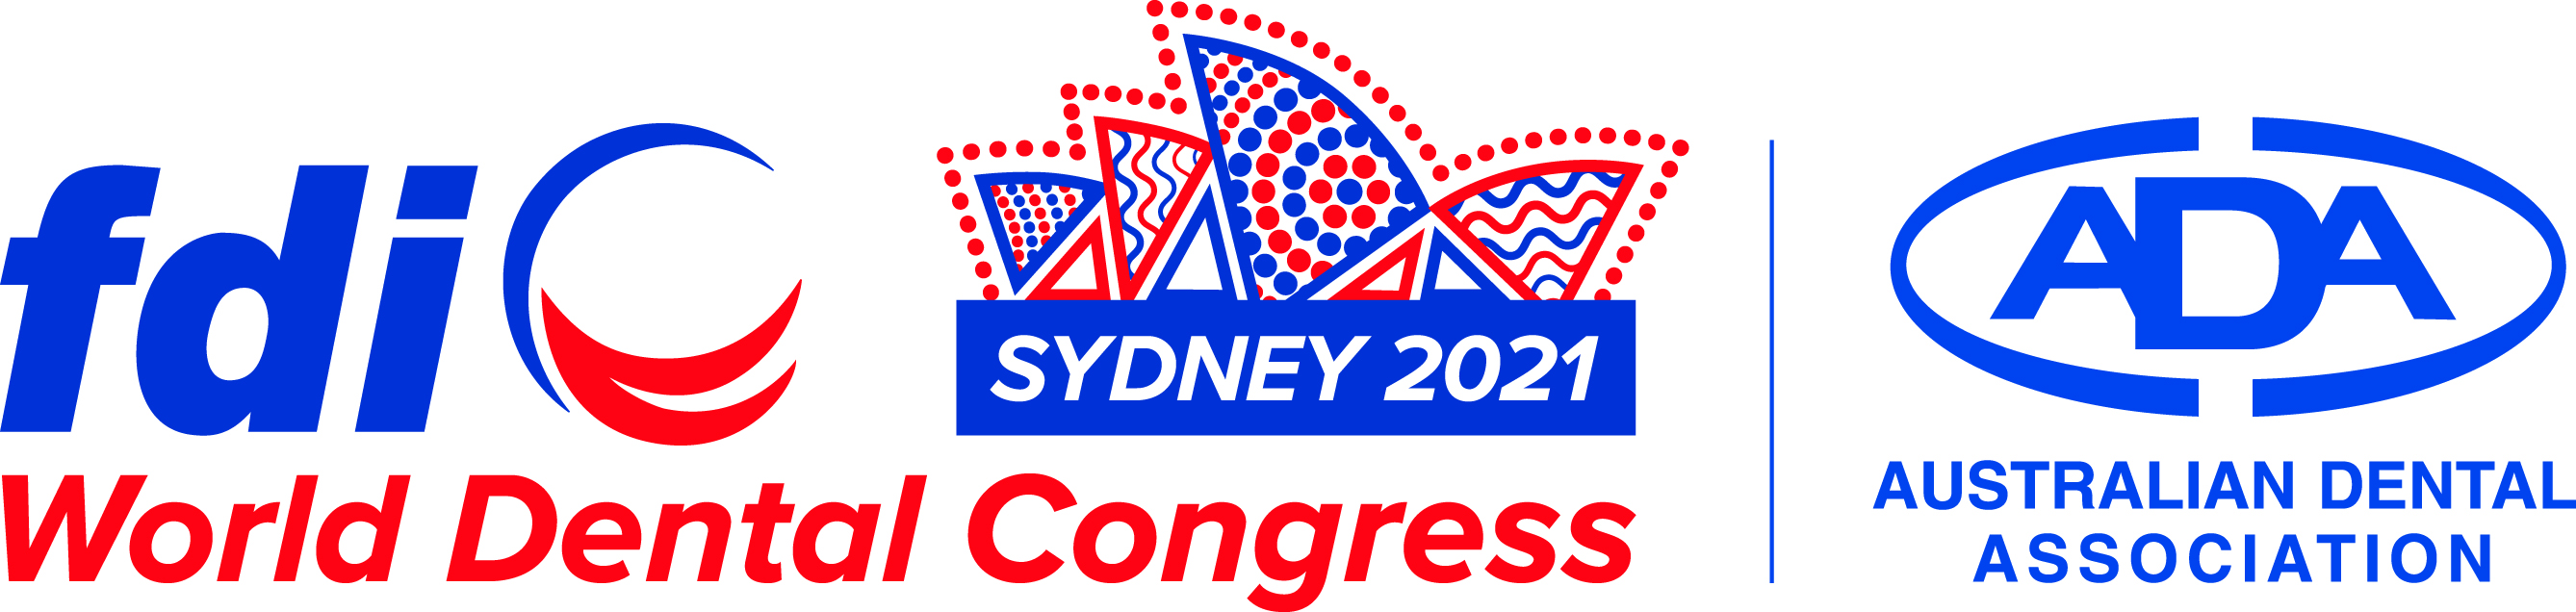 FDI Congress Sydney 2021